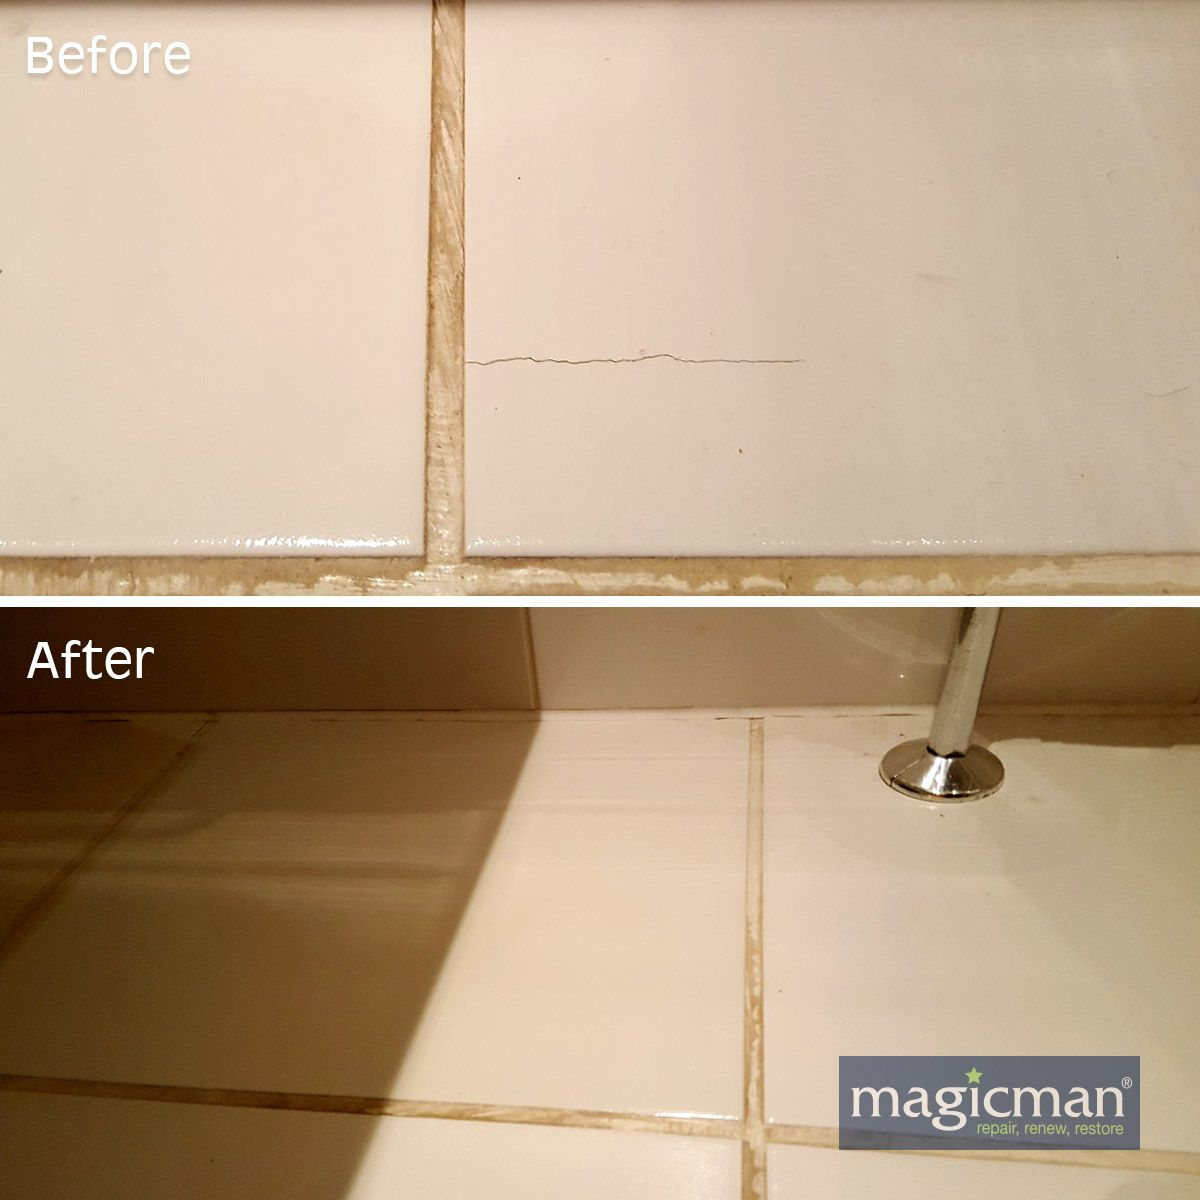 Floor and wall tiles with cracks, stains, drill holes or